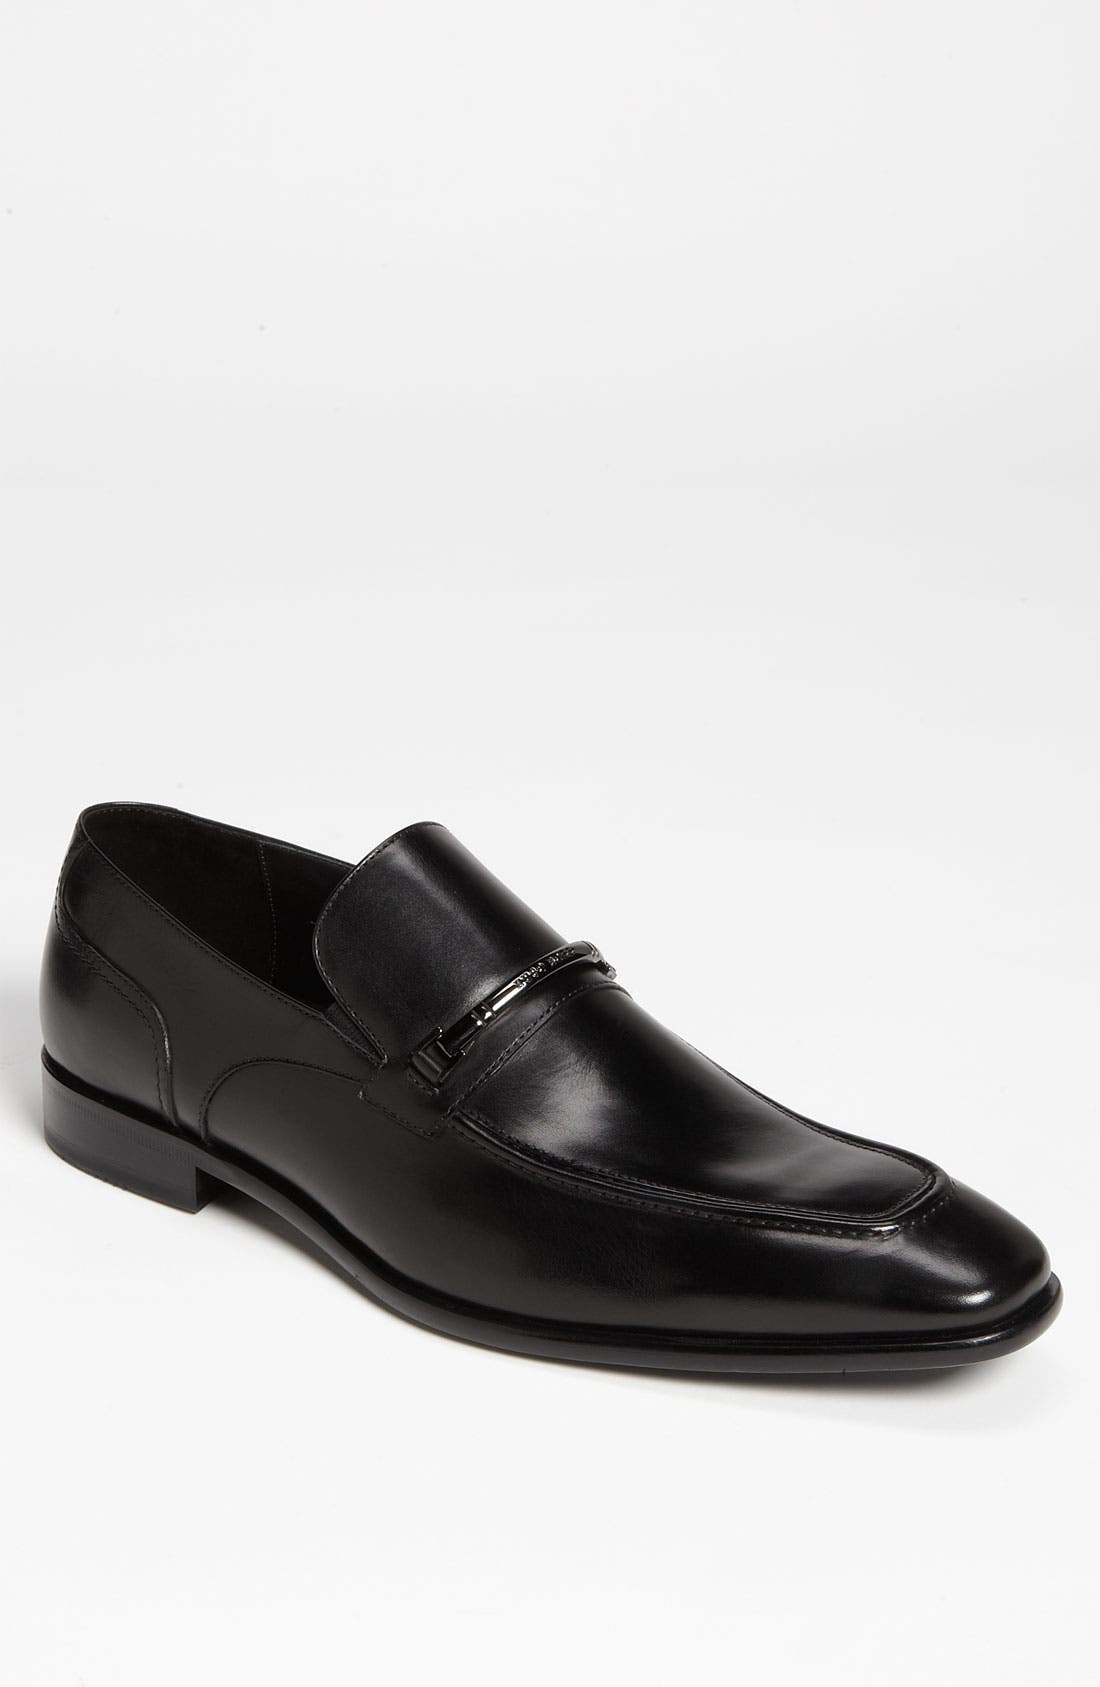 Alternate Image 1 Selected - BOSS HUGO BOSS 'Metono' Bit Loafer